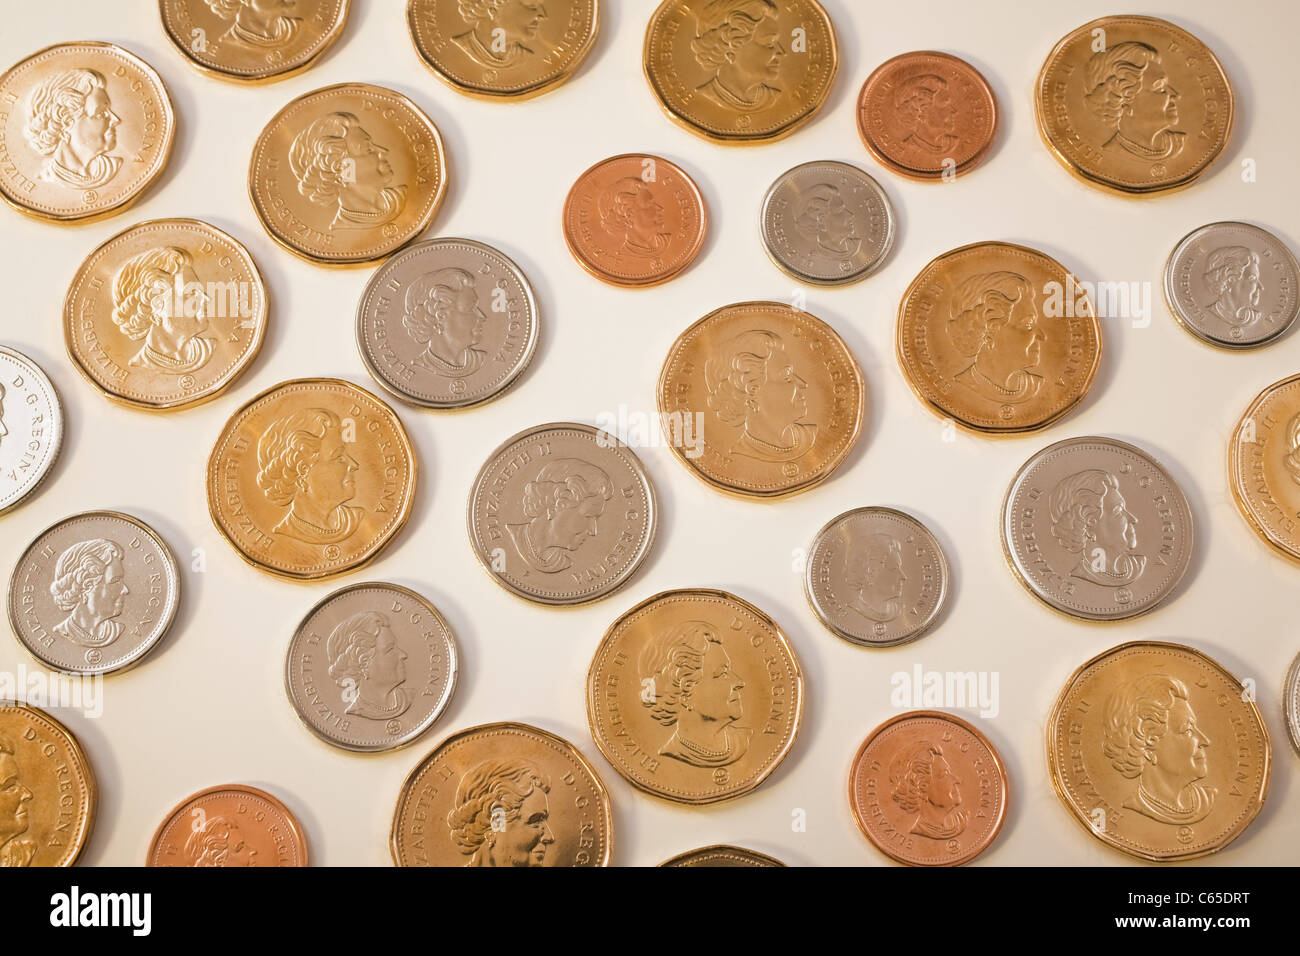 Selection of Canadian coins on white background - Stock Image